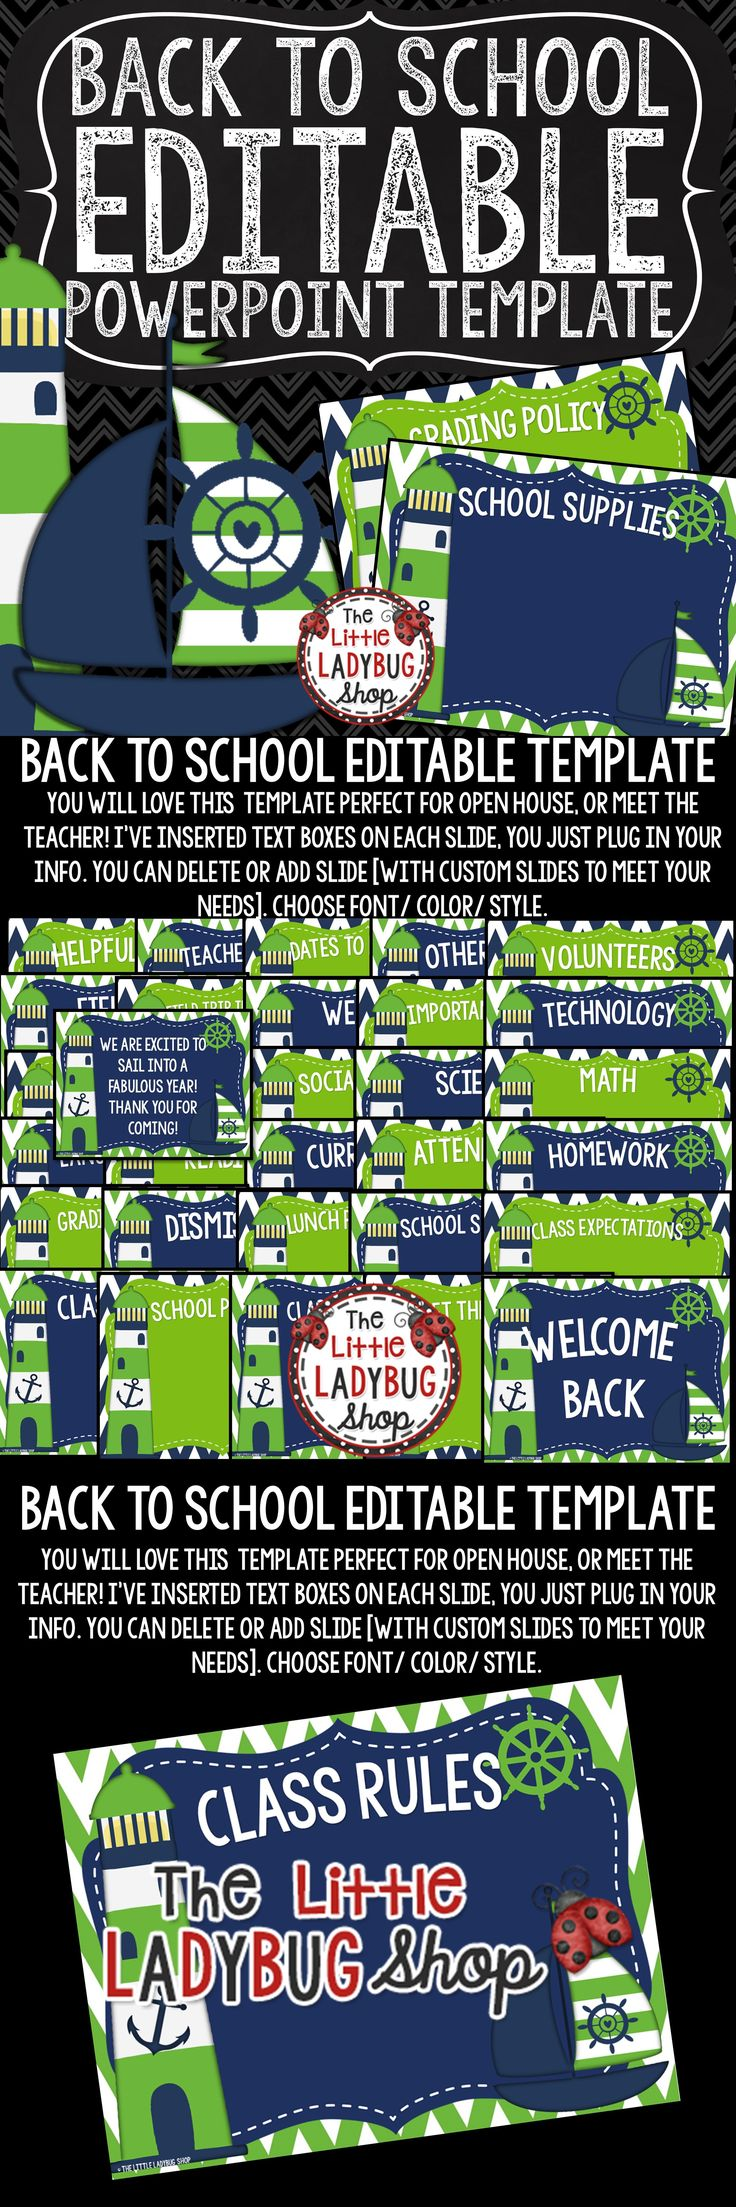 Nautical Theme Back To School Night PowerPoint Template ~ Open House ~ Meet The Teacher to present all your important information to your class and parents. This BEAUTIFUL NAUTICAL CLASSROOM THEME is perfect for Open House, Meet the Teacher, and other school functions! This template is created in PowerPoint and it is 100% EDITABLE for you to plug in your classroom information!